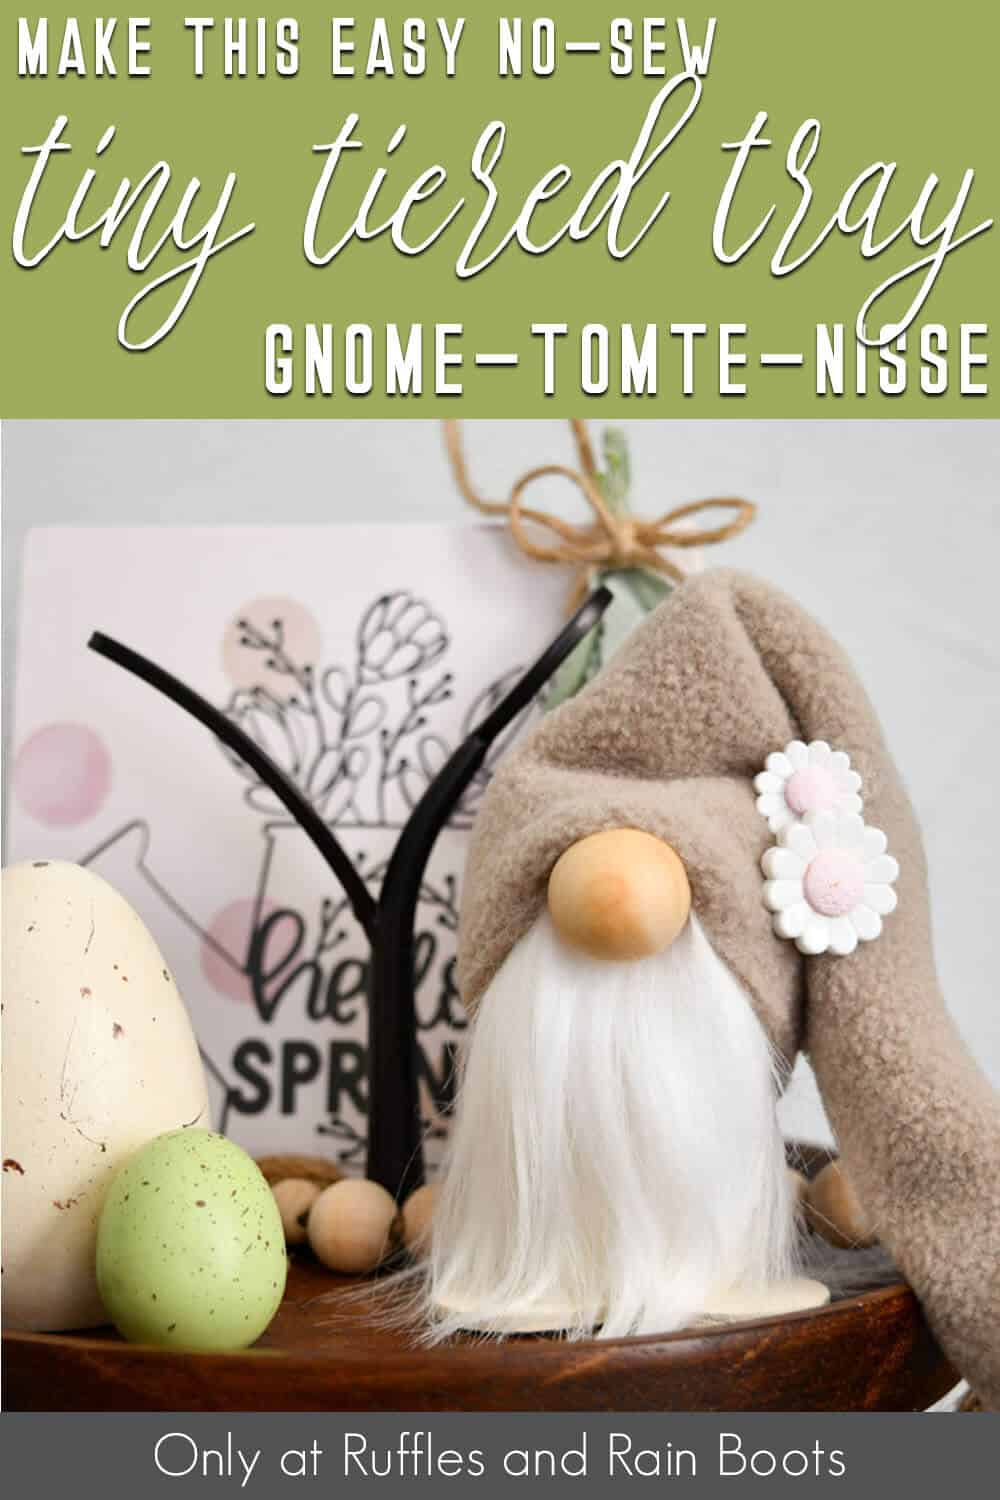 farmhouse tiered tray gnome scrap-buster project with text which reads make this easy no-sew tiny tiered tray gnome tomte nisse